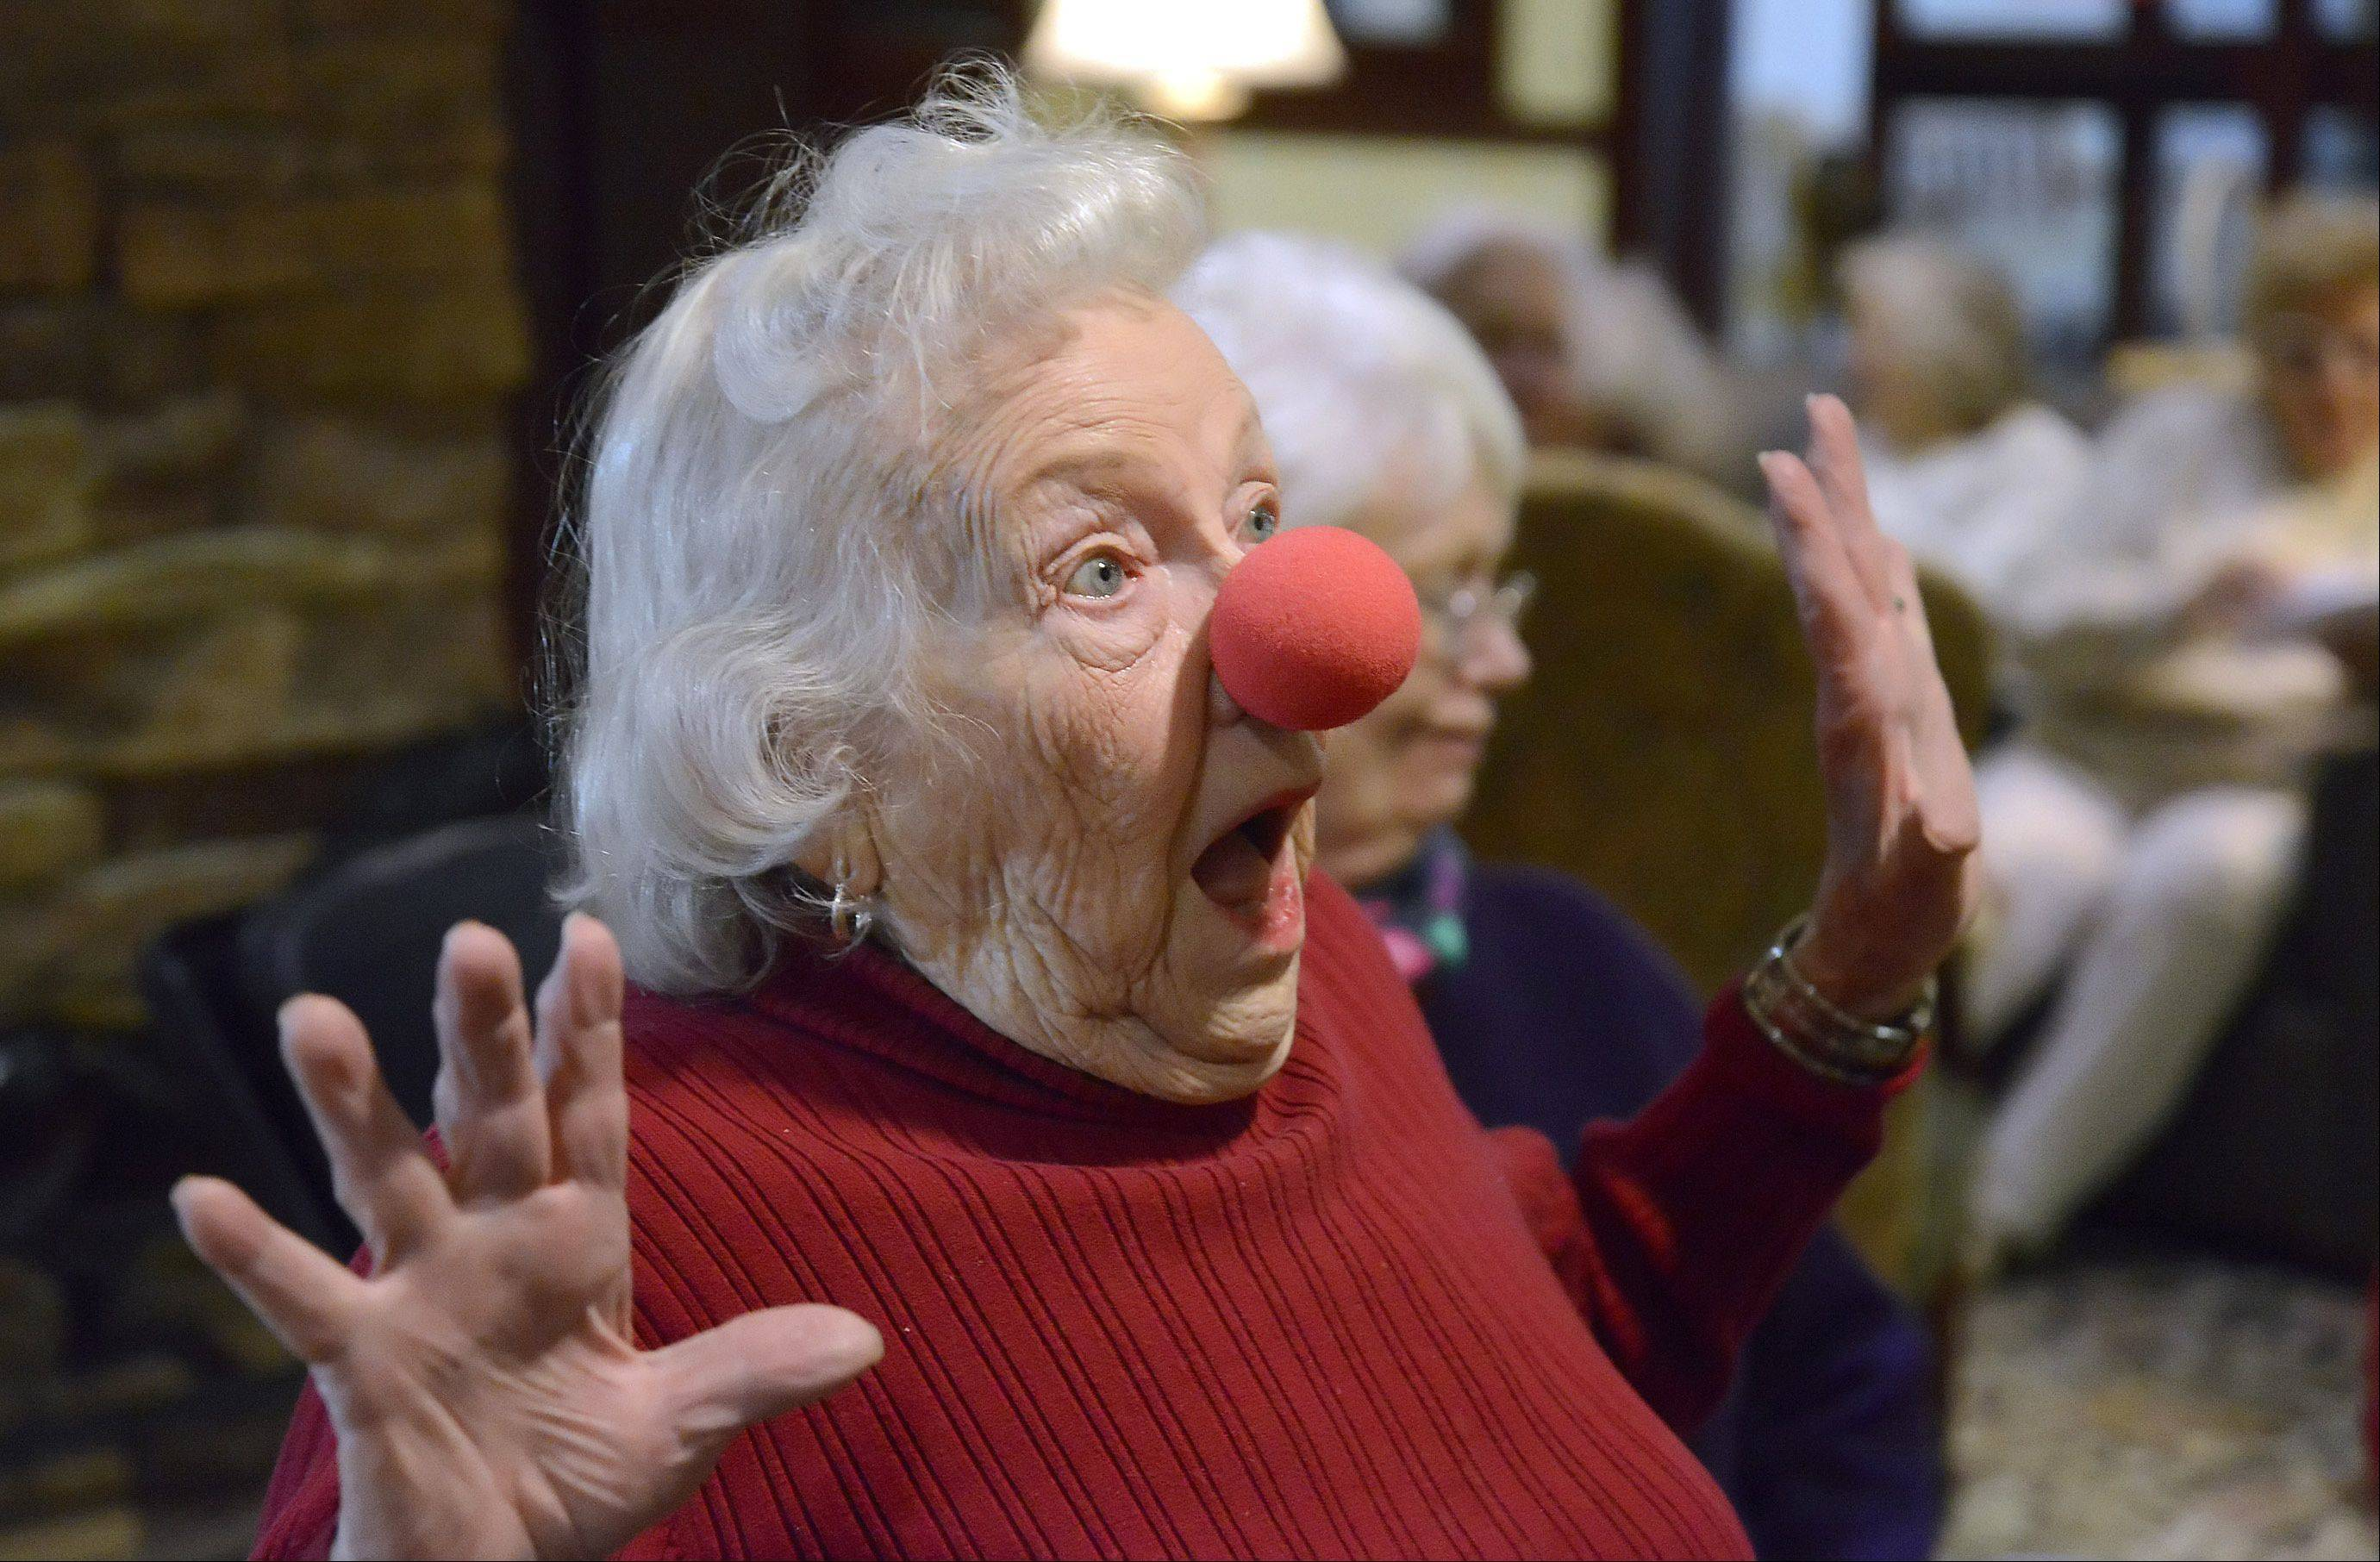 "Kally Close, 89, a resident of The Holmstad in Batavia, plays along with Polyester the clown's schtick and acts surprised after being donned with a foam nose. She told him, ""You make us happy, but you get the joy."""